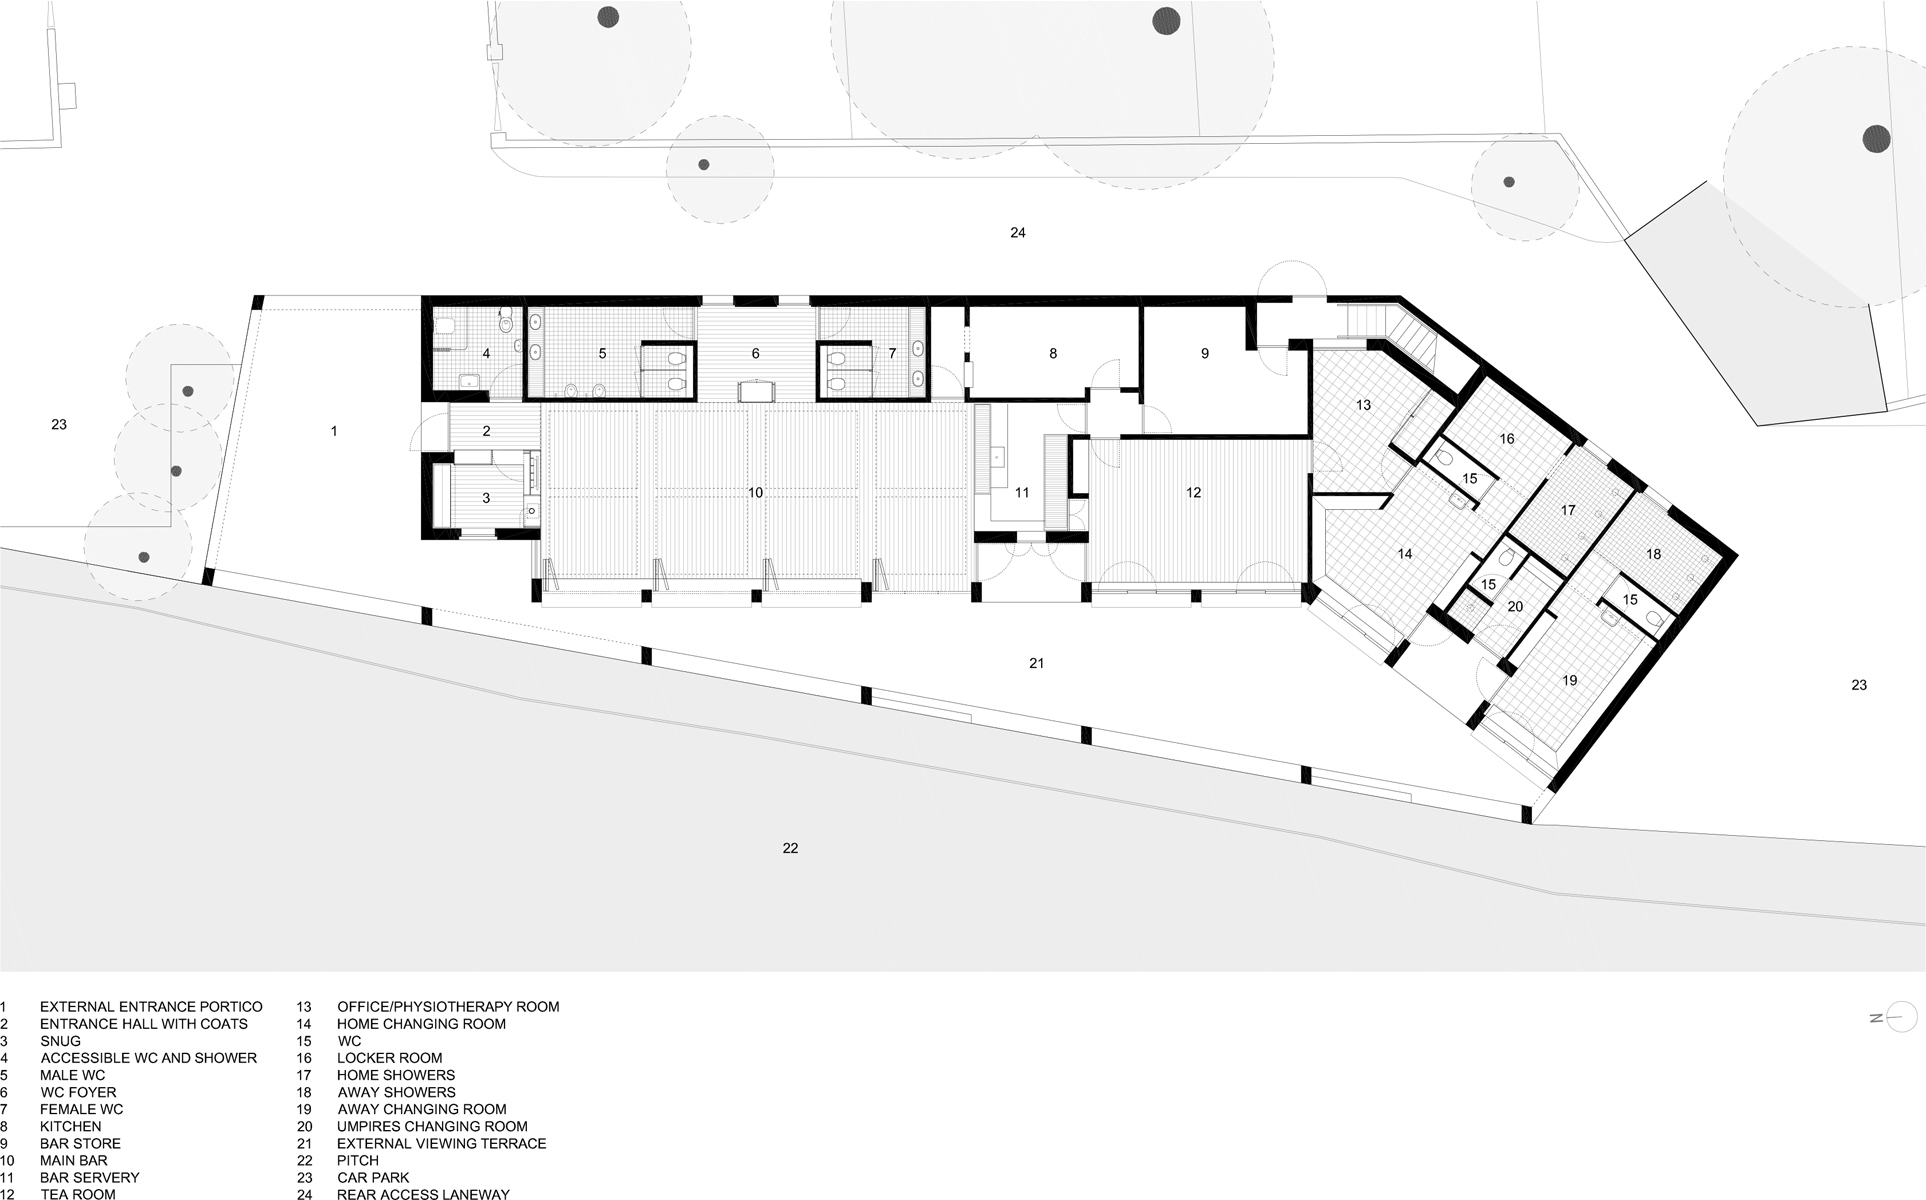 Plan cellule dynamis sur defender - Architects